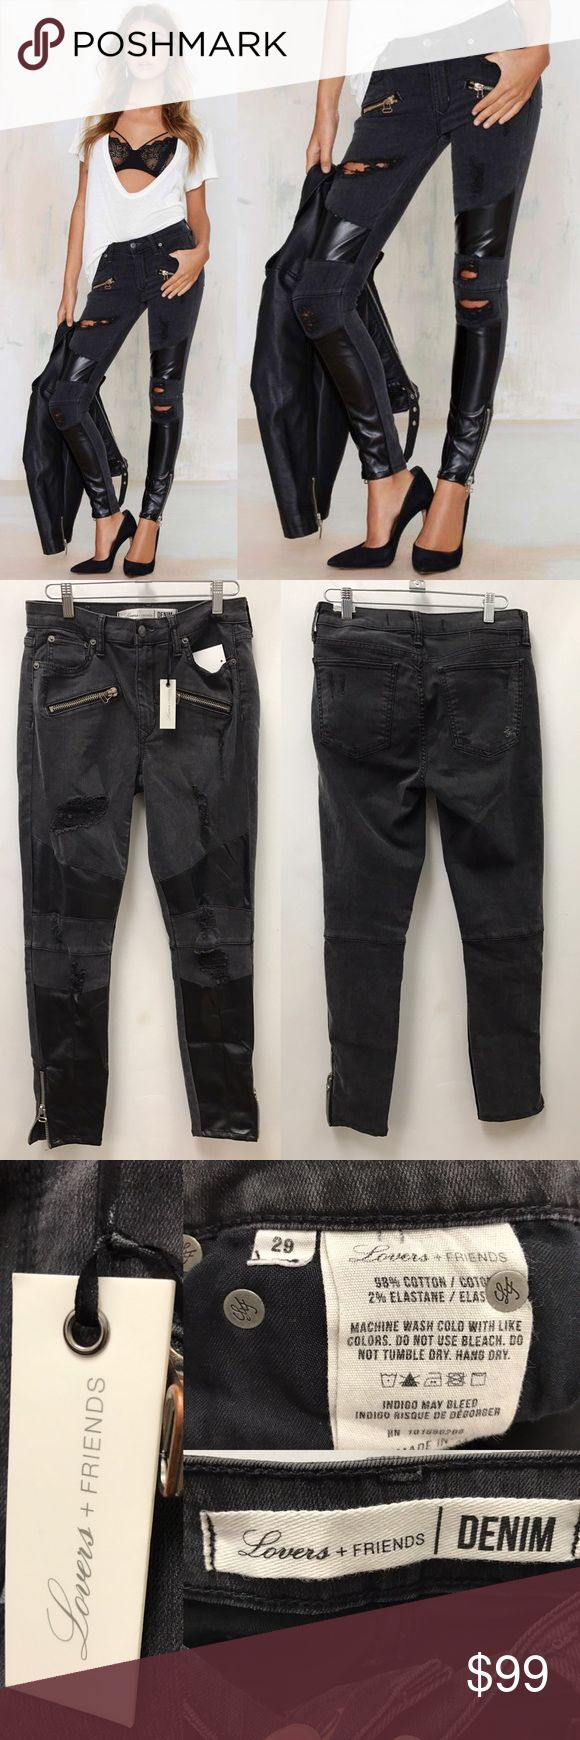 "Lovers and friends distressed moto skinnies Lover and friends distressed moto skinnies comes in a stretch denim. Light black wash (gray) has black faux leather patches on knees and leg. 5 pocket design plus 2 zipper pockets. Has zipper on ankles. Waist 14 1/2"", rise 9"", inseam 28"" Lovers + Friends Jeans Skinny"